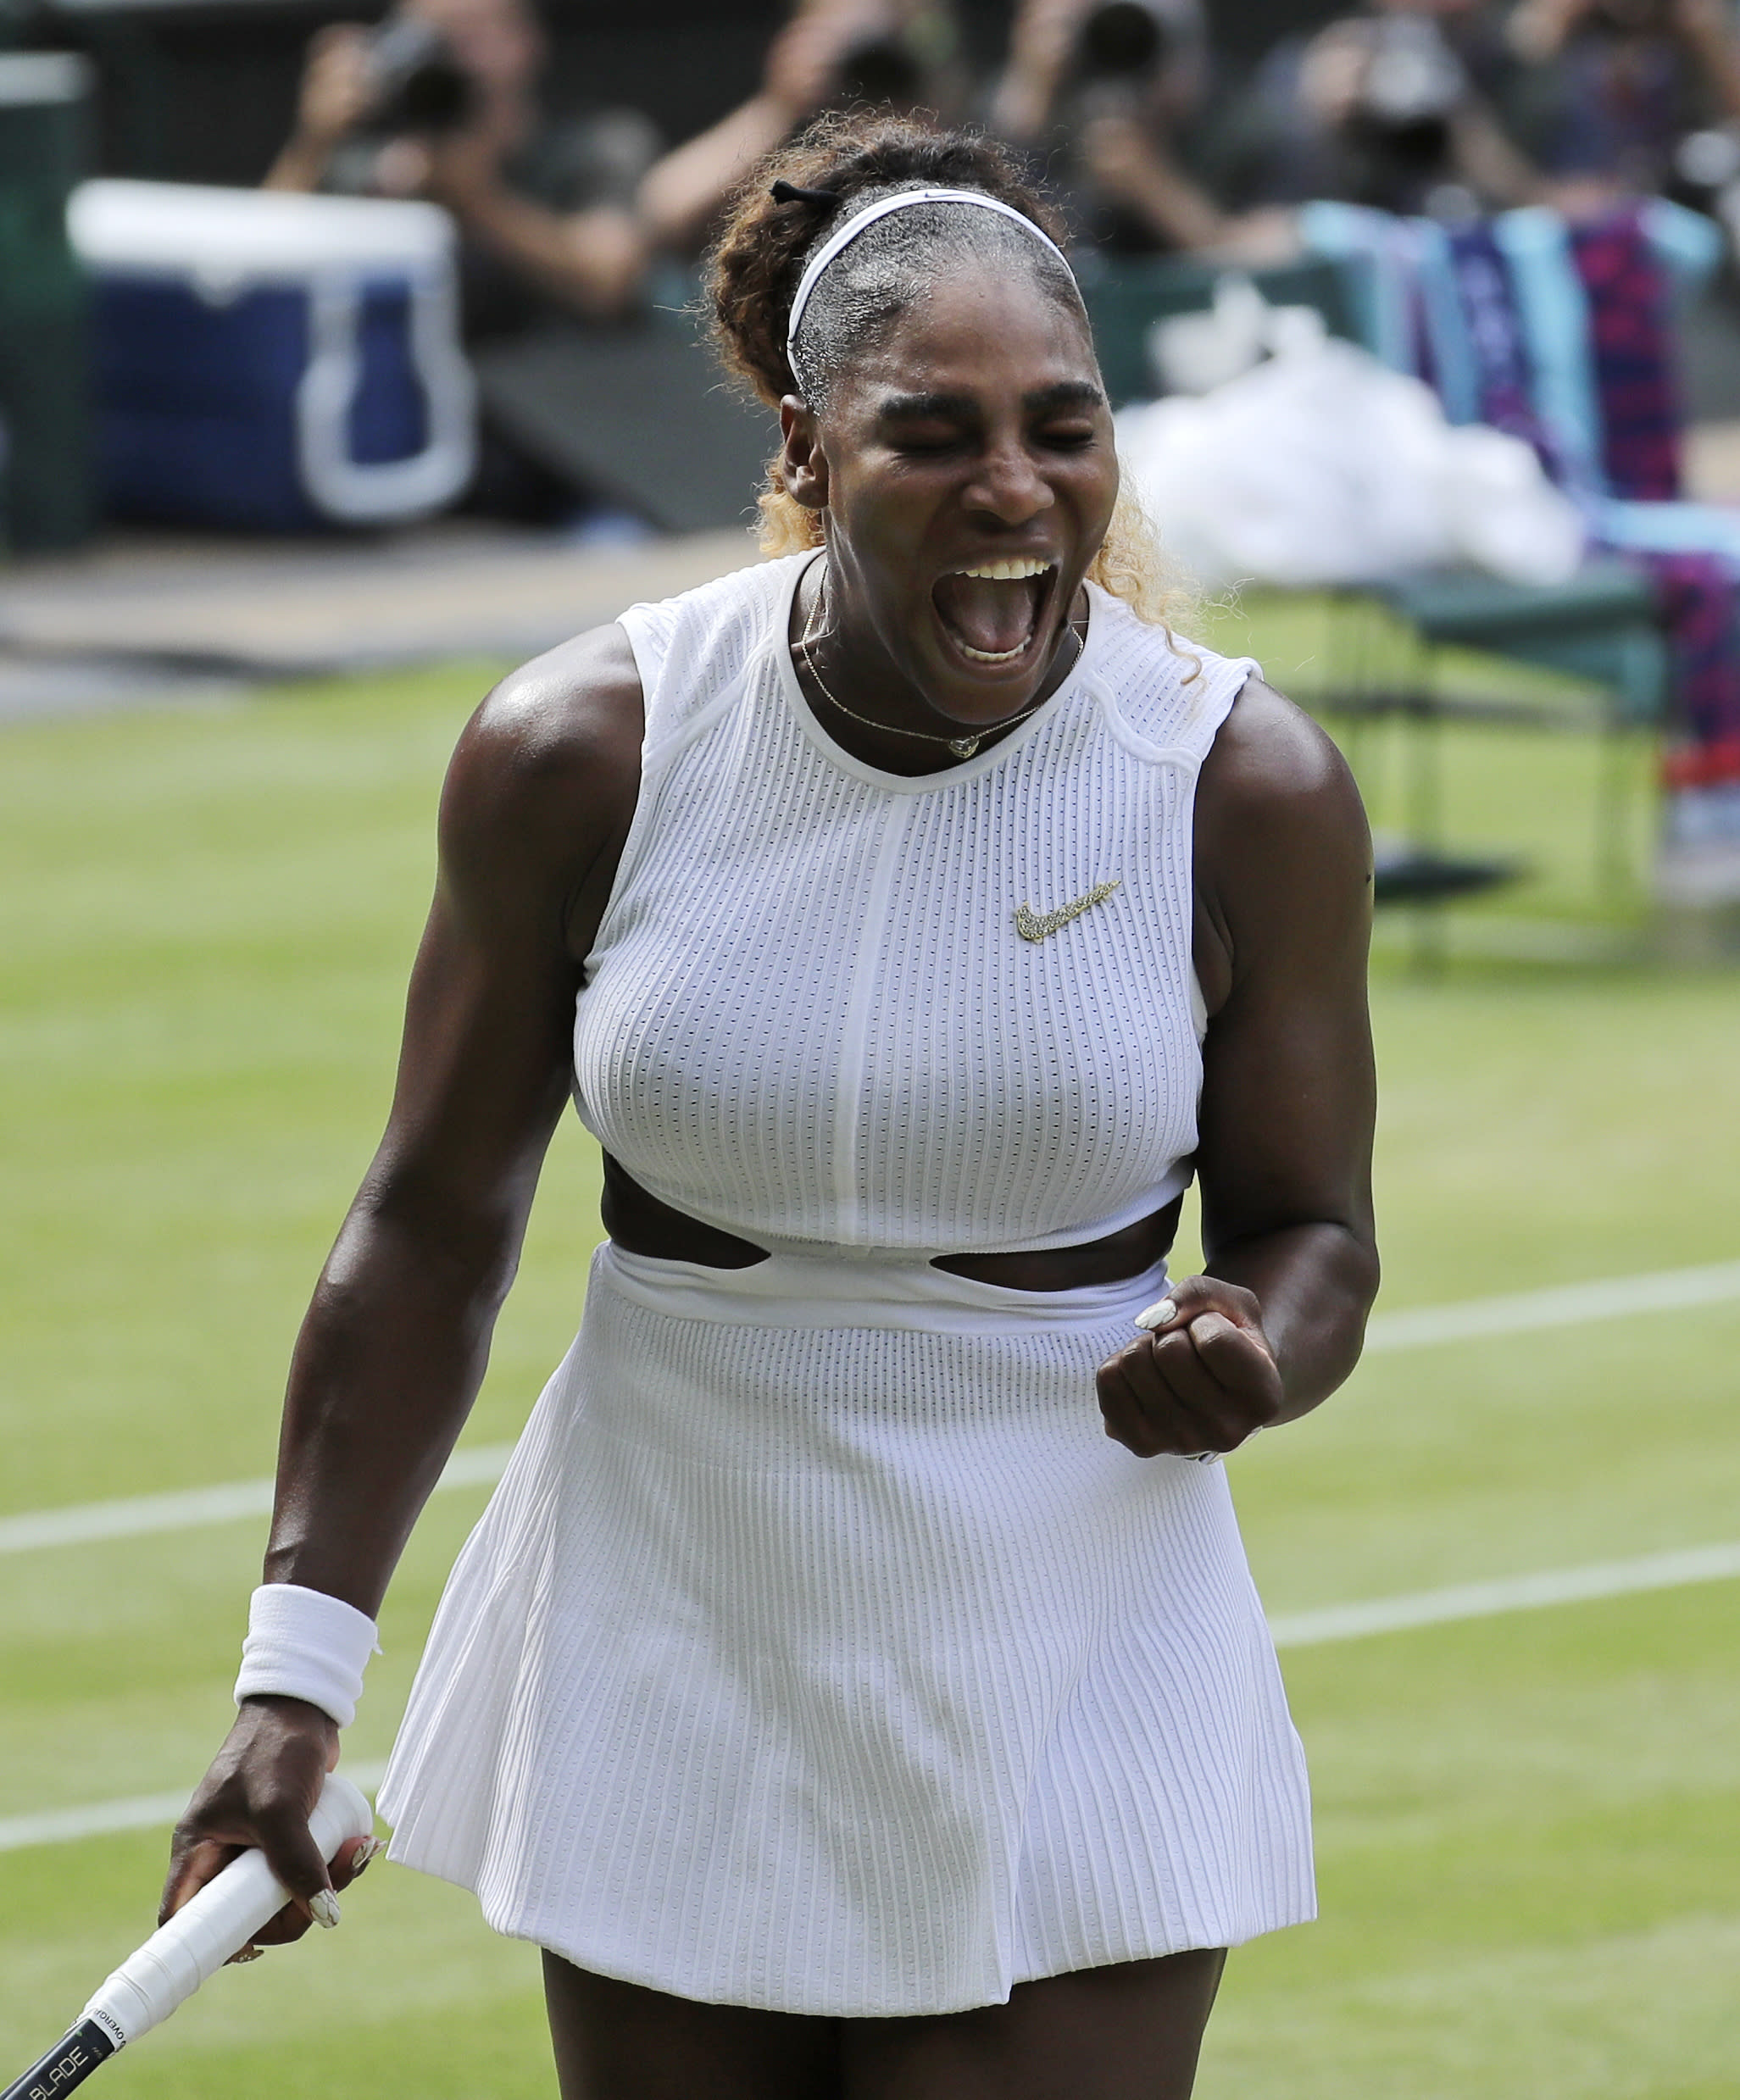 Serena Williams Loses Wimbeldon to Simona Halep